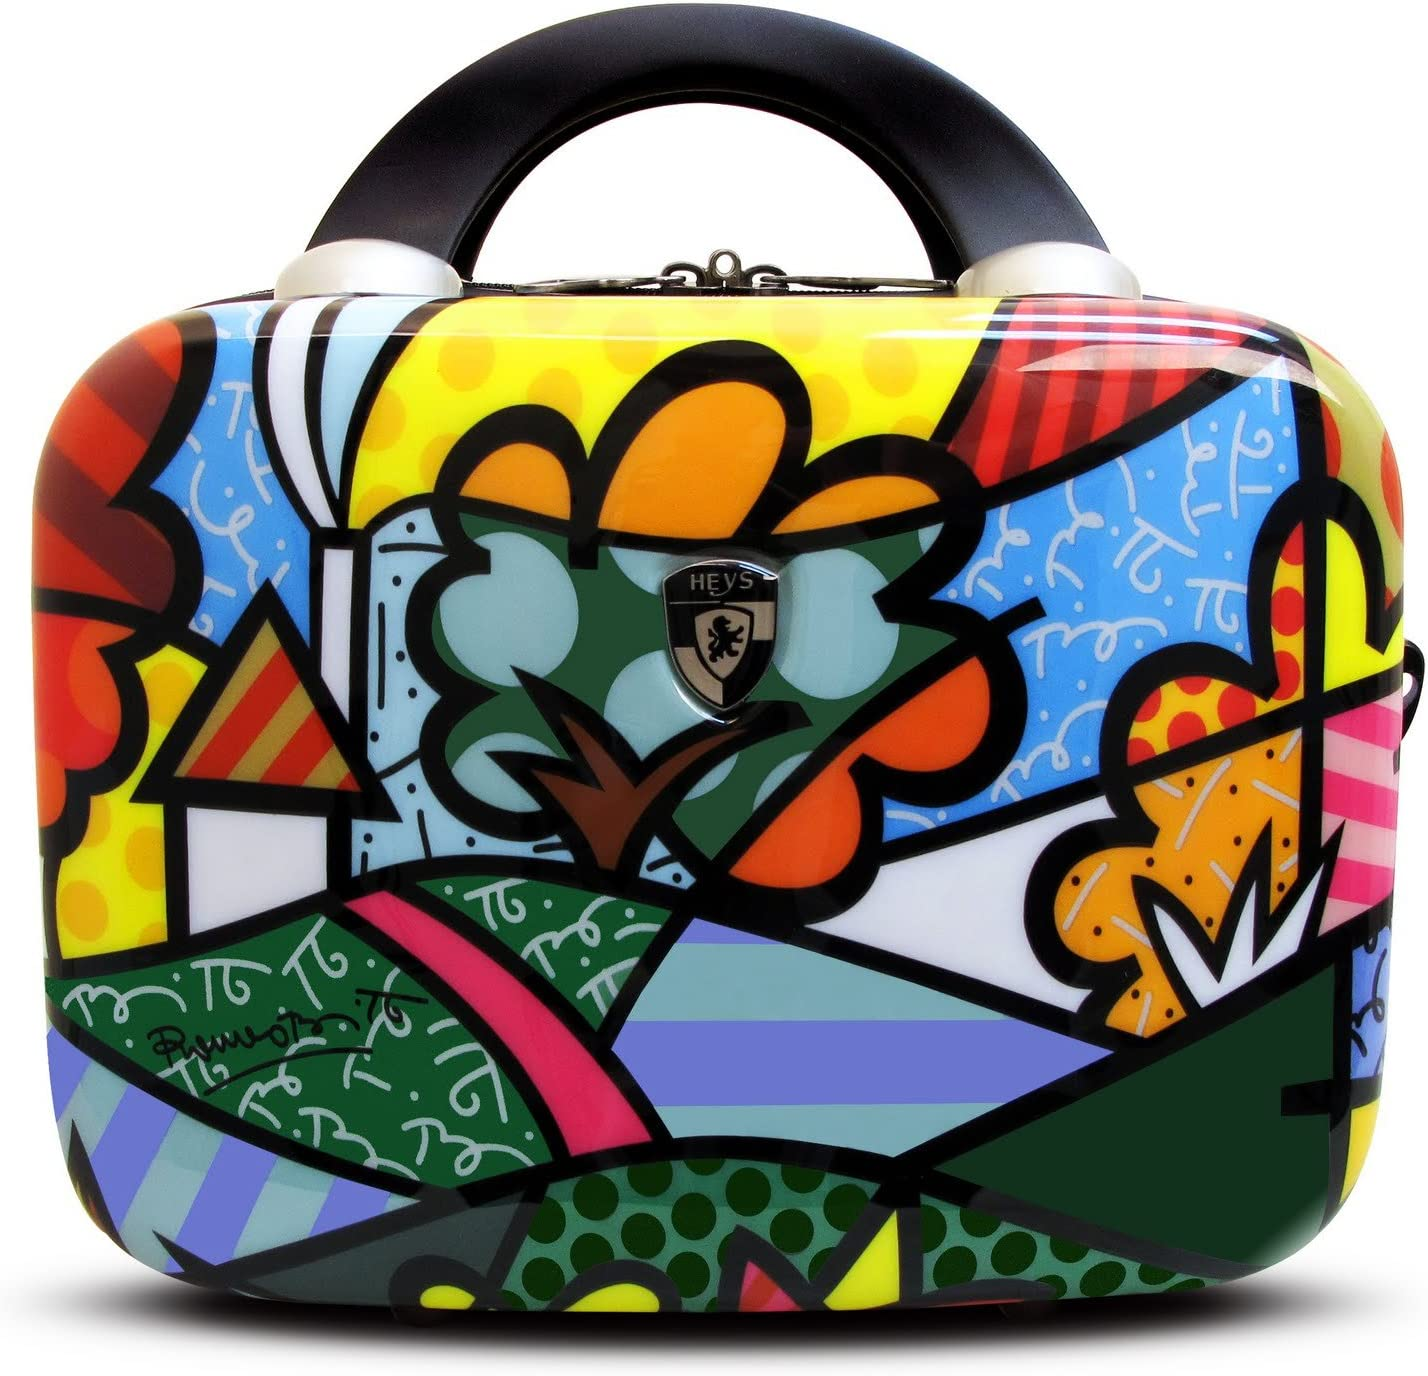 Heys Selling USA Luggage Britto Flowers Hard Multi-Col Beauty Case Side Max 79% OFF